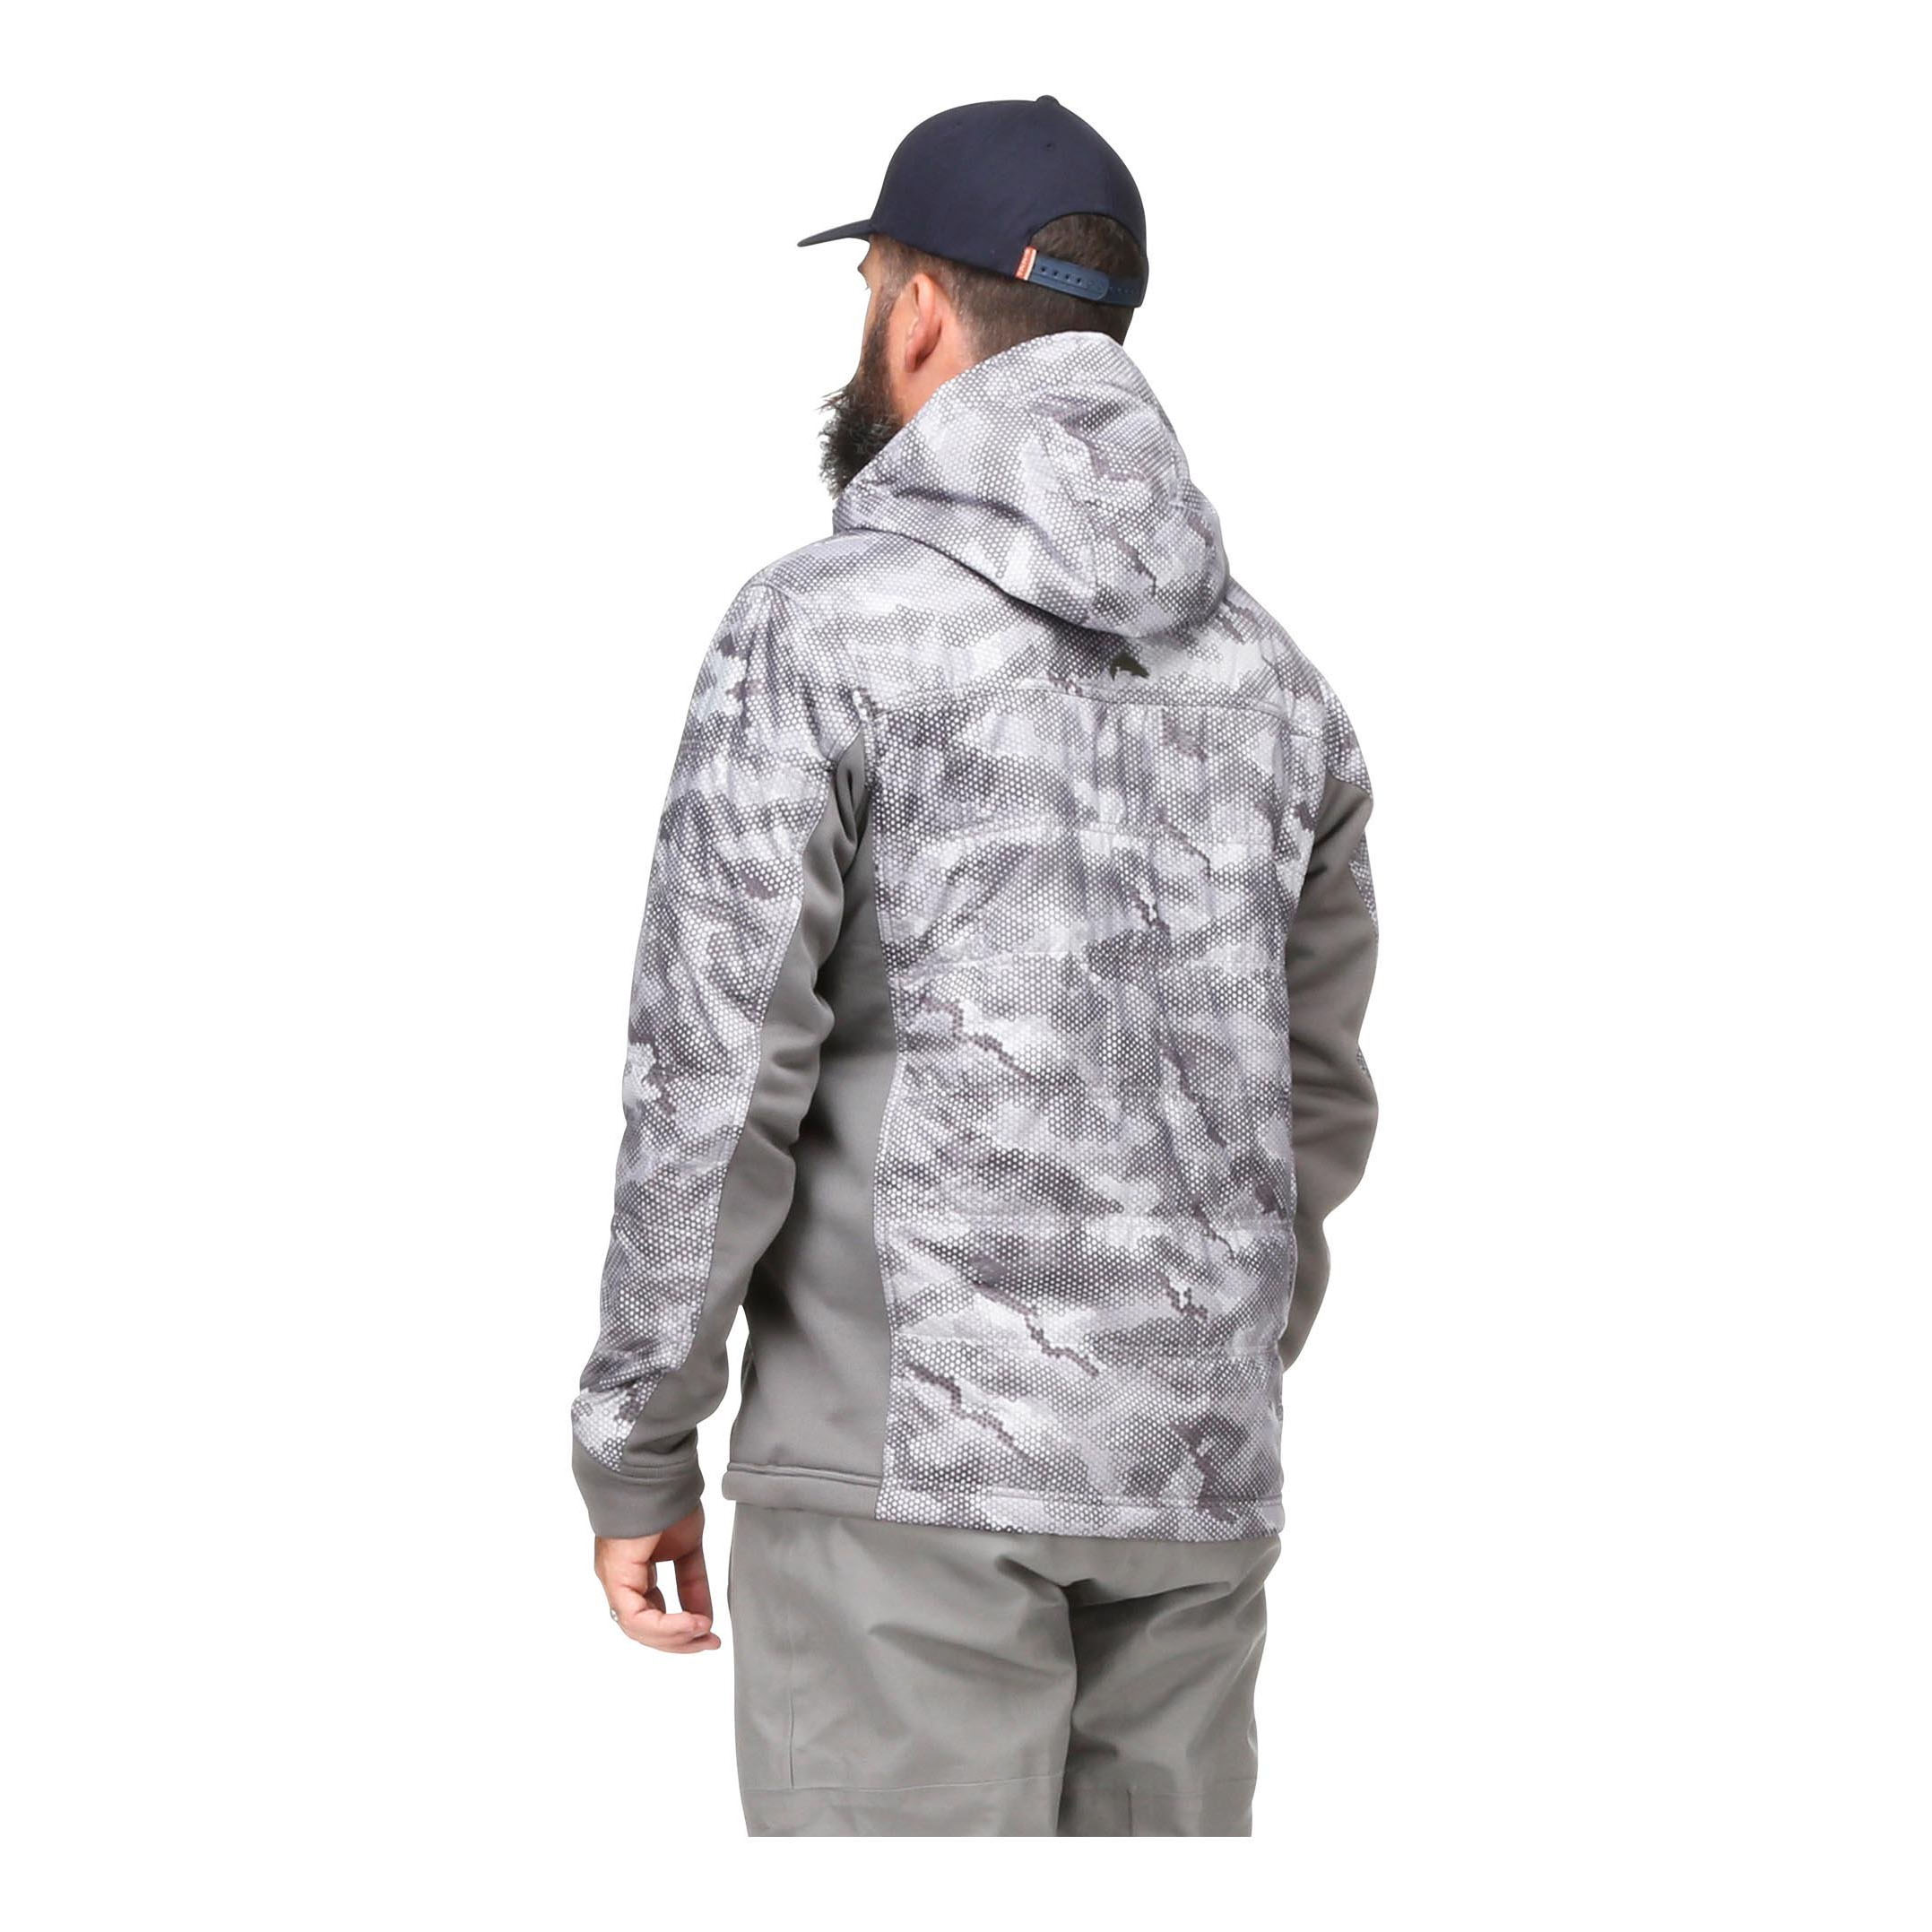 KINETIC JACKET HEX CAMO BOULDER 3